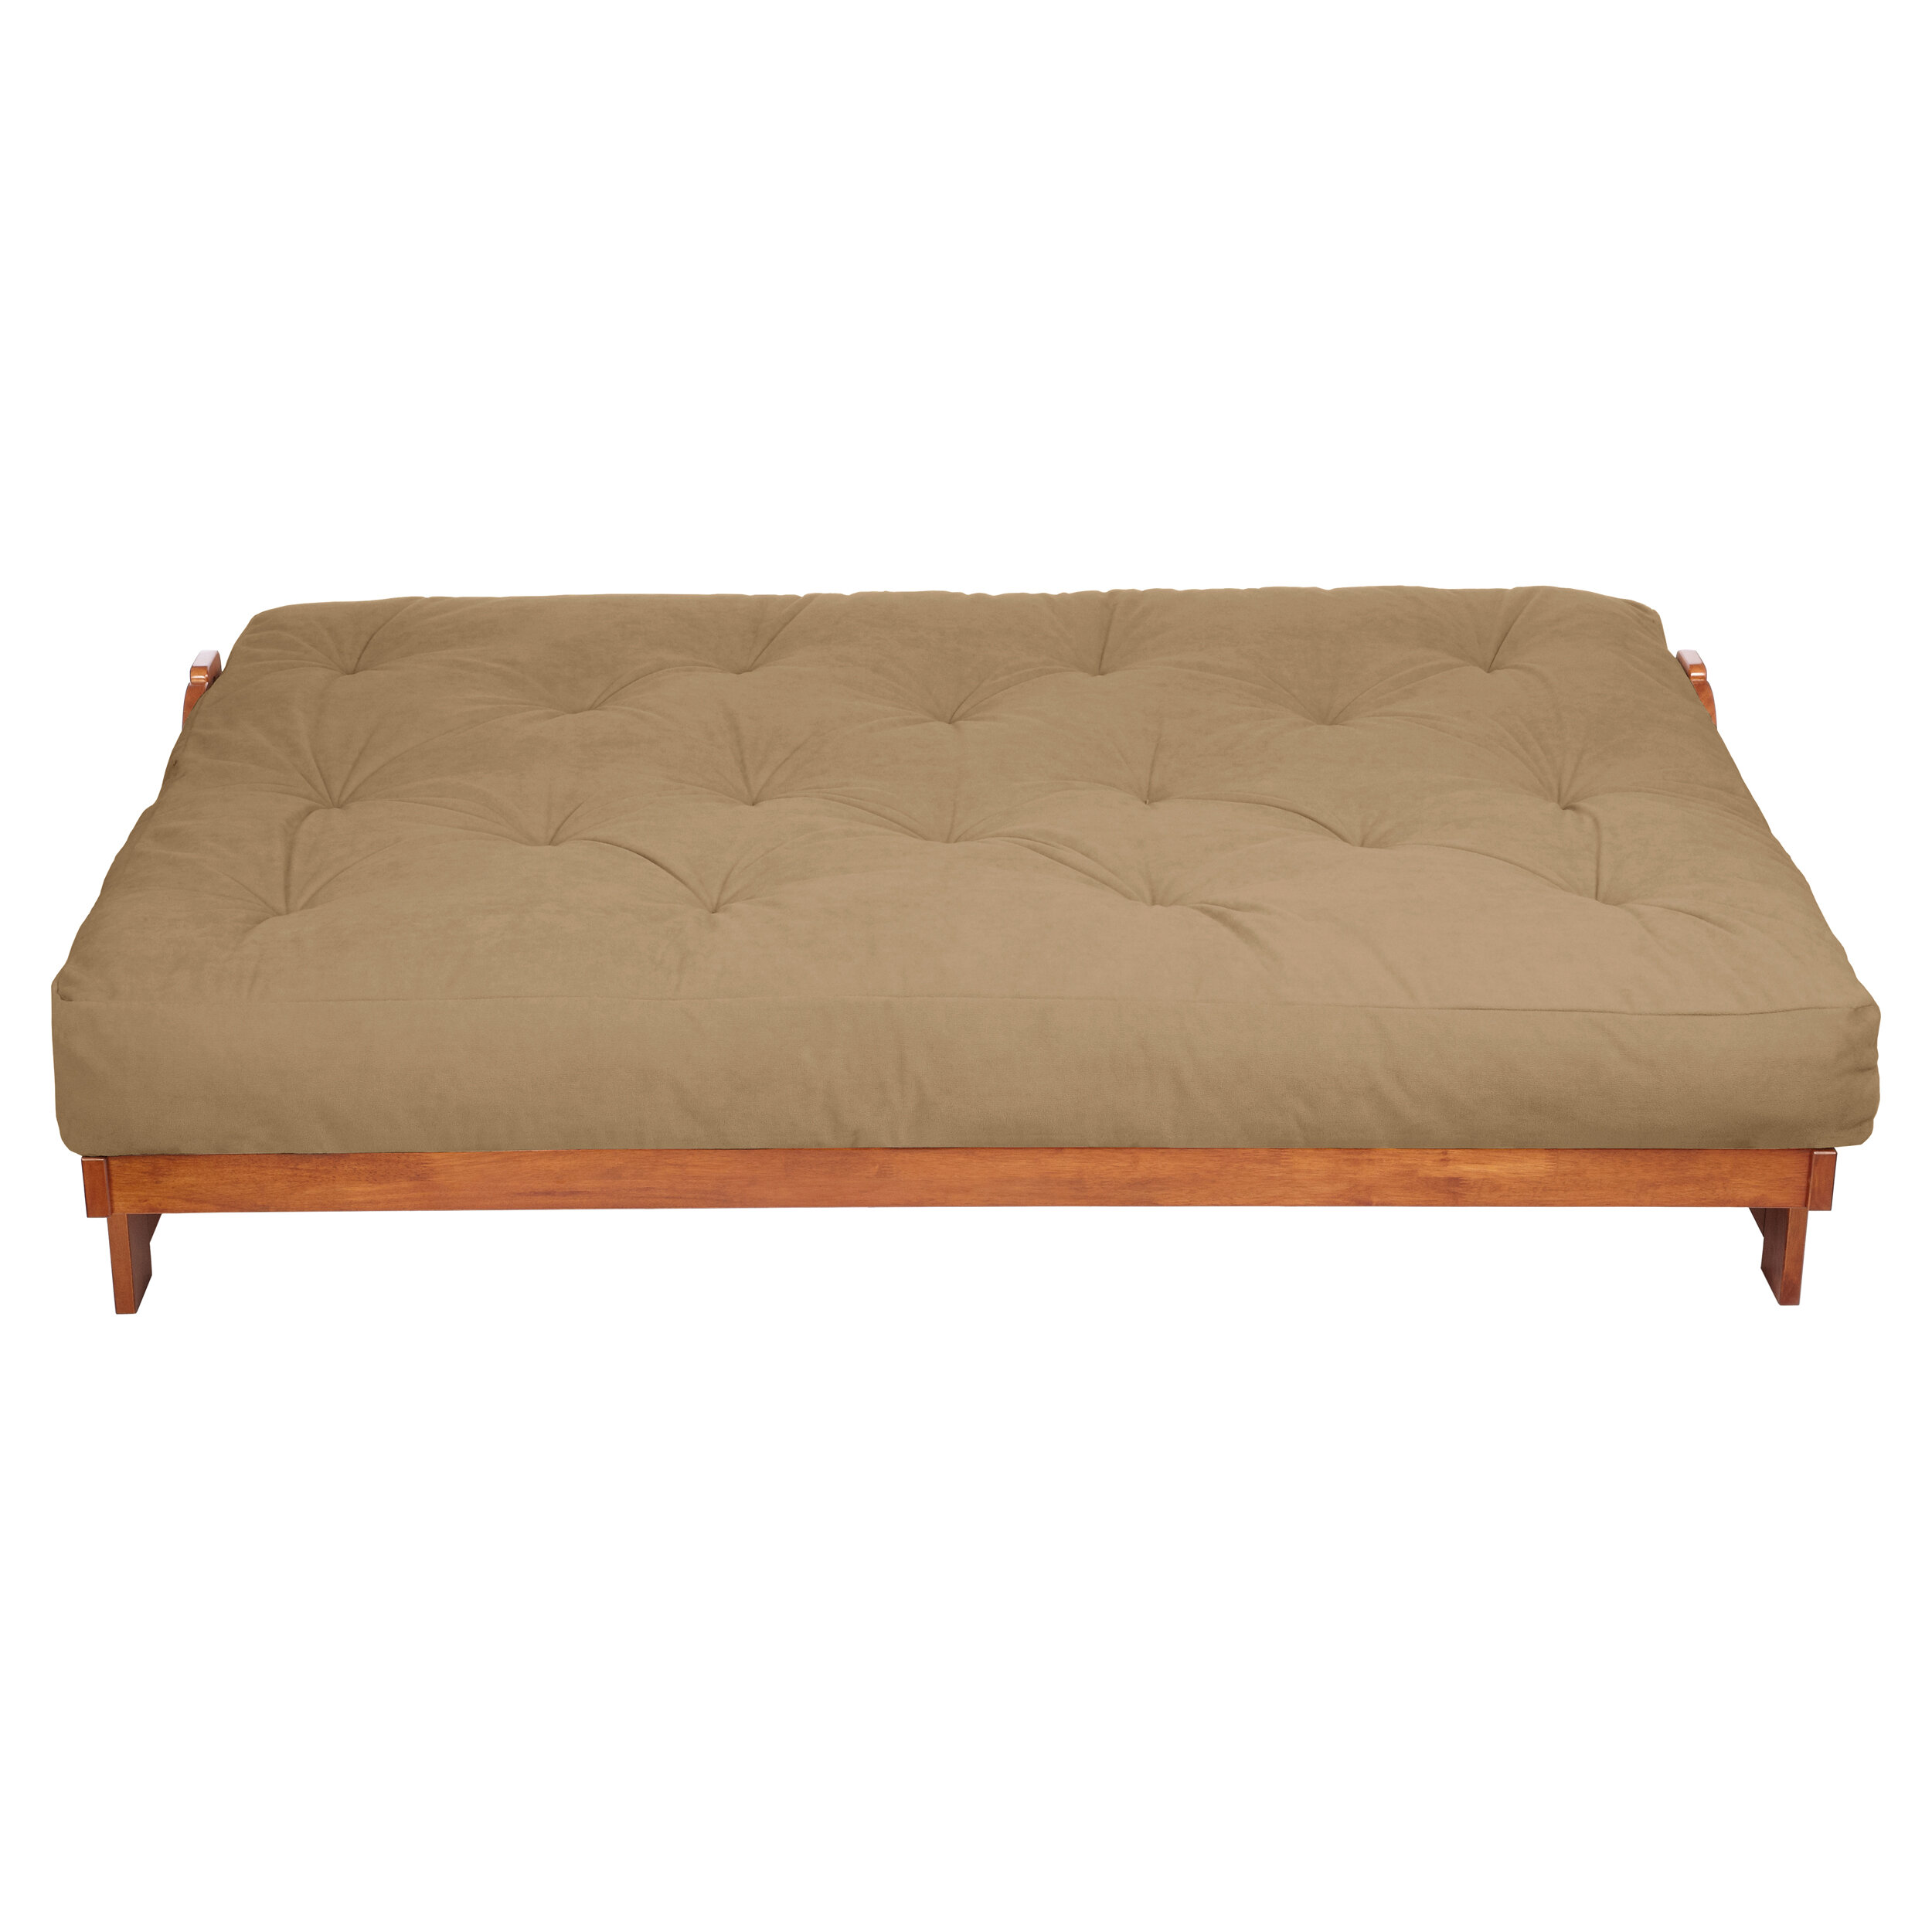 frames beautiful home roselawnlutheran frame series bed of futons einzigartig inch frisch cheap futon leather mattresses vertical and innerspring mattress log